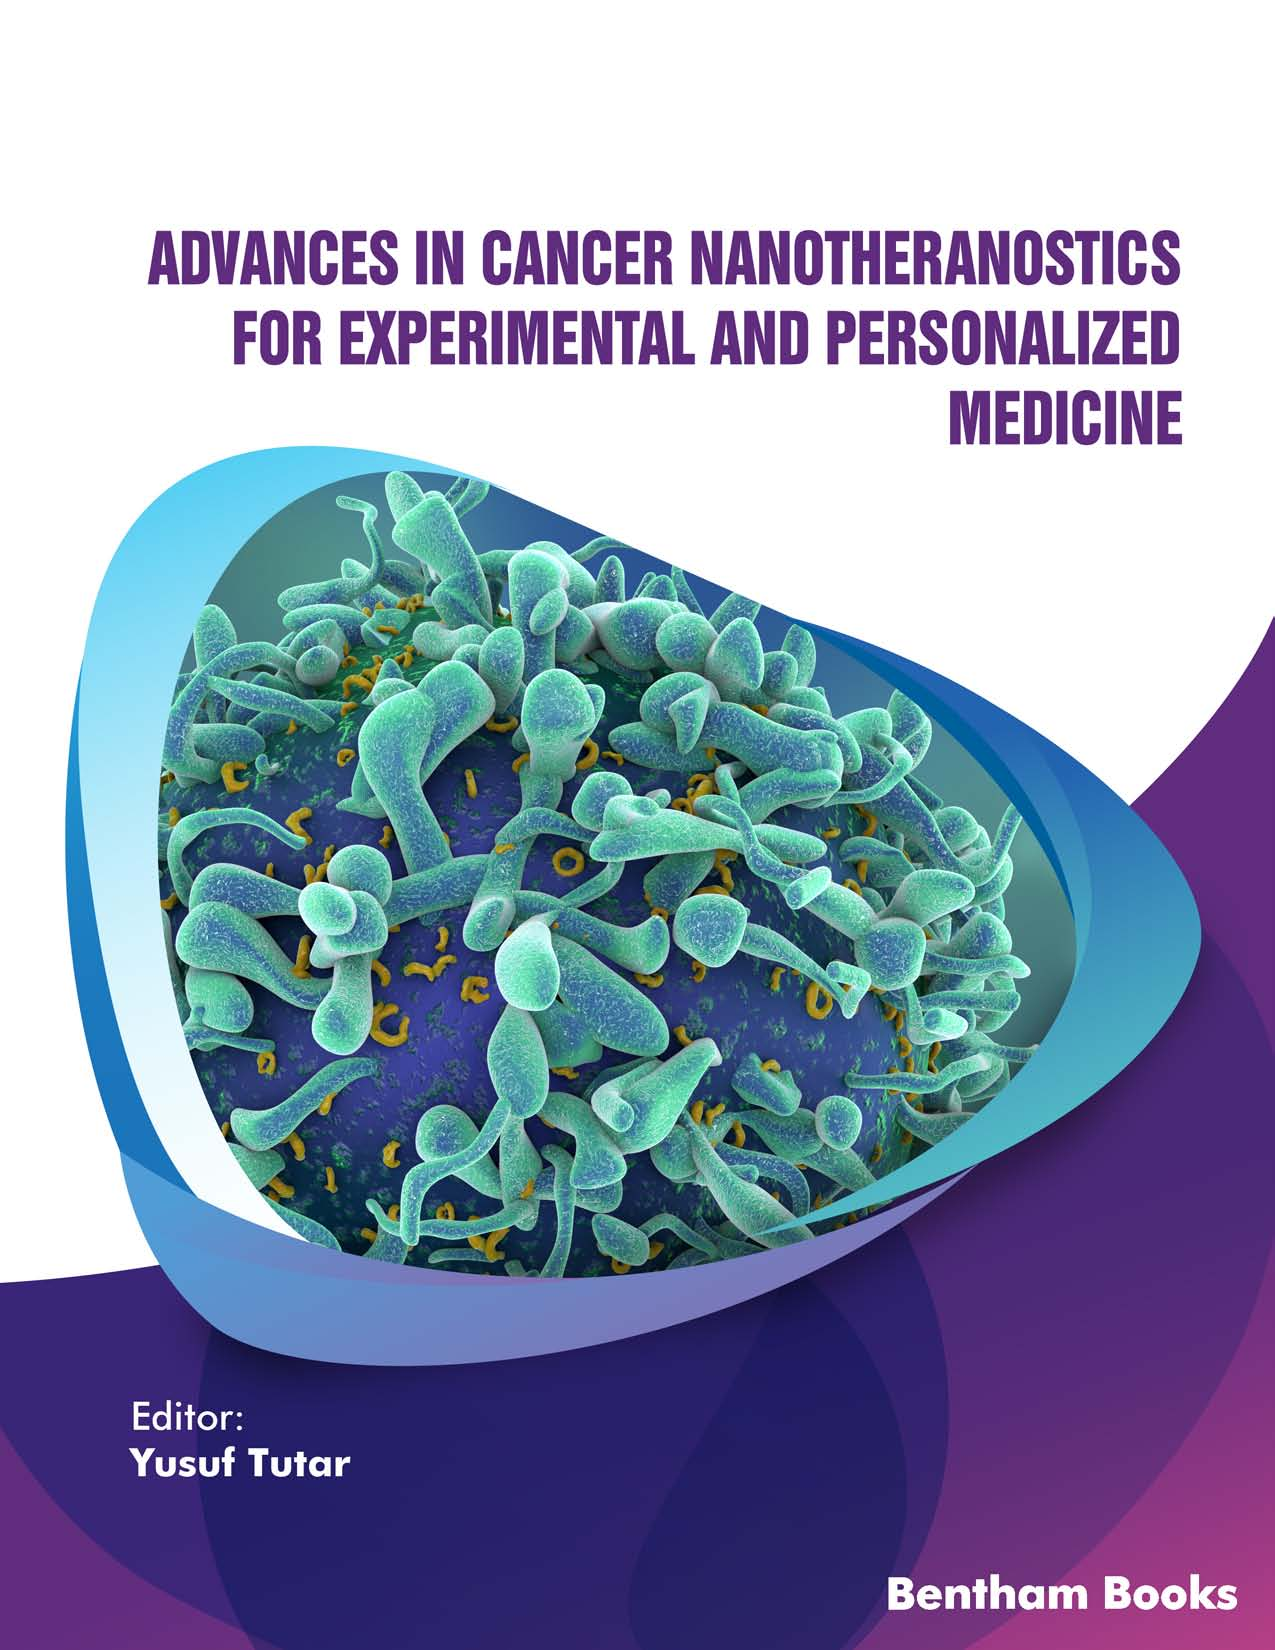 Advances in Cancer Nanotheranostics for Experimental and Personalized Medicine